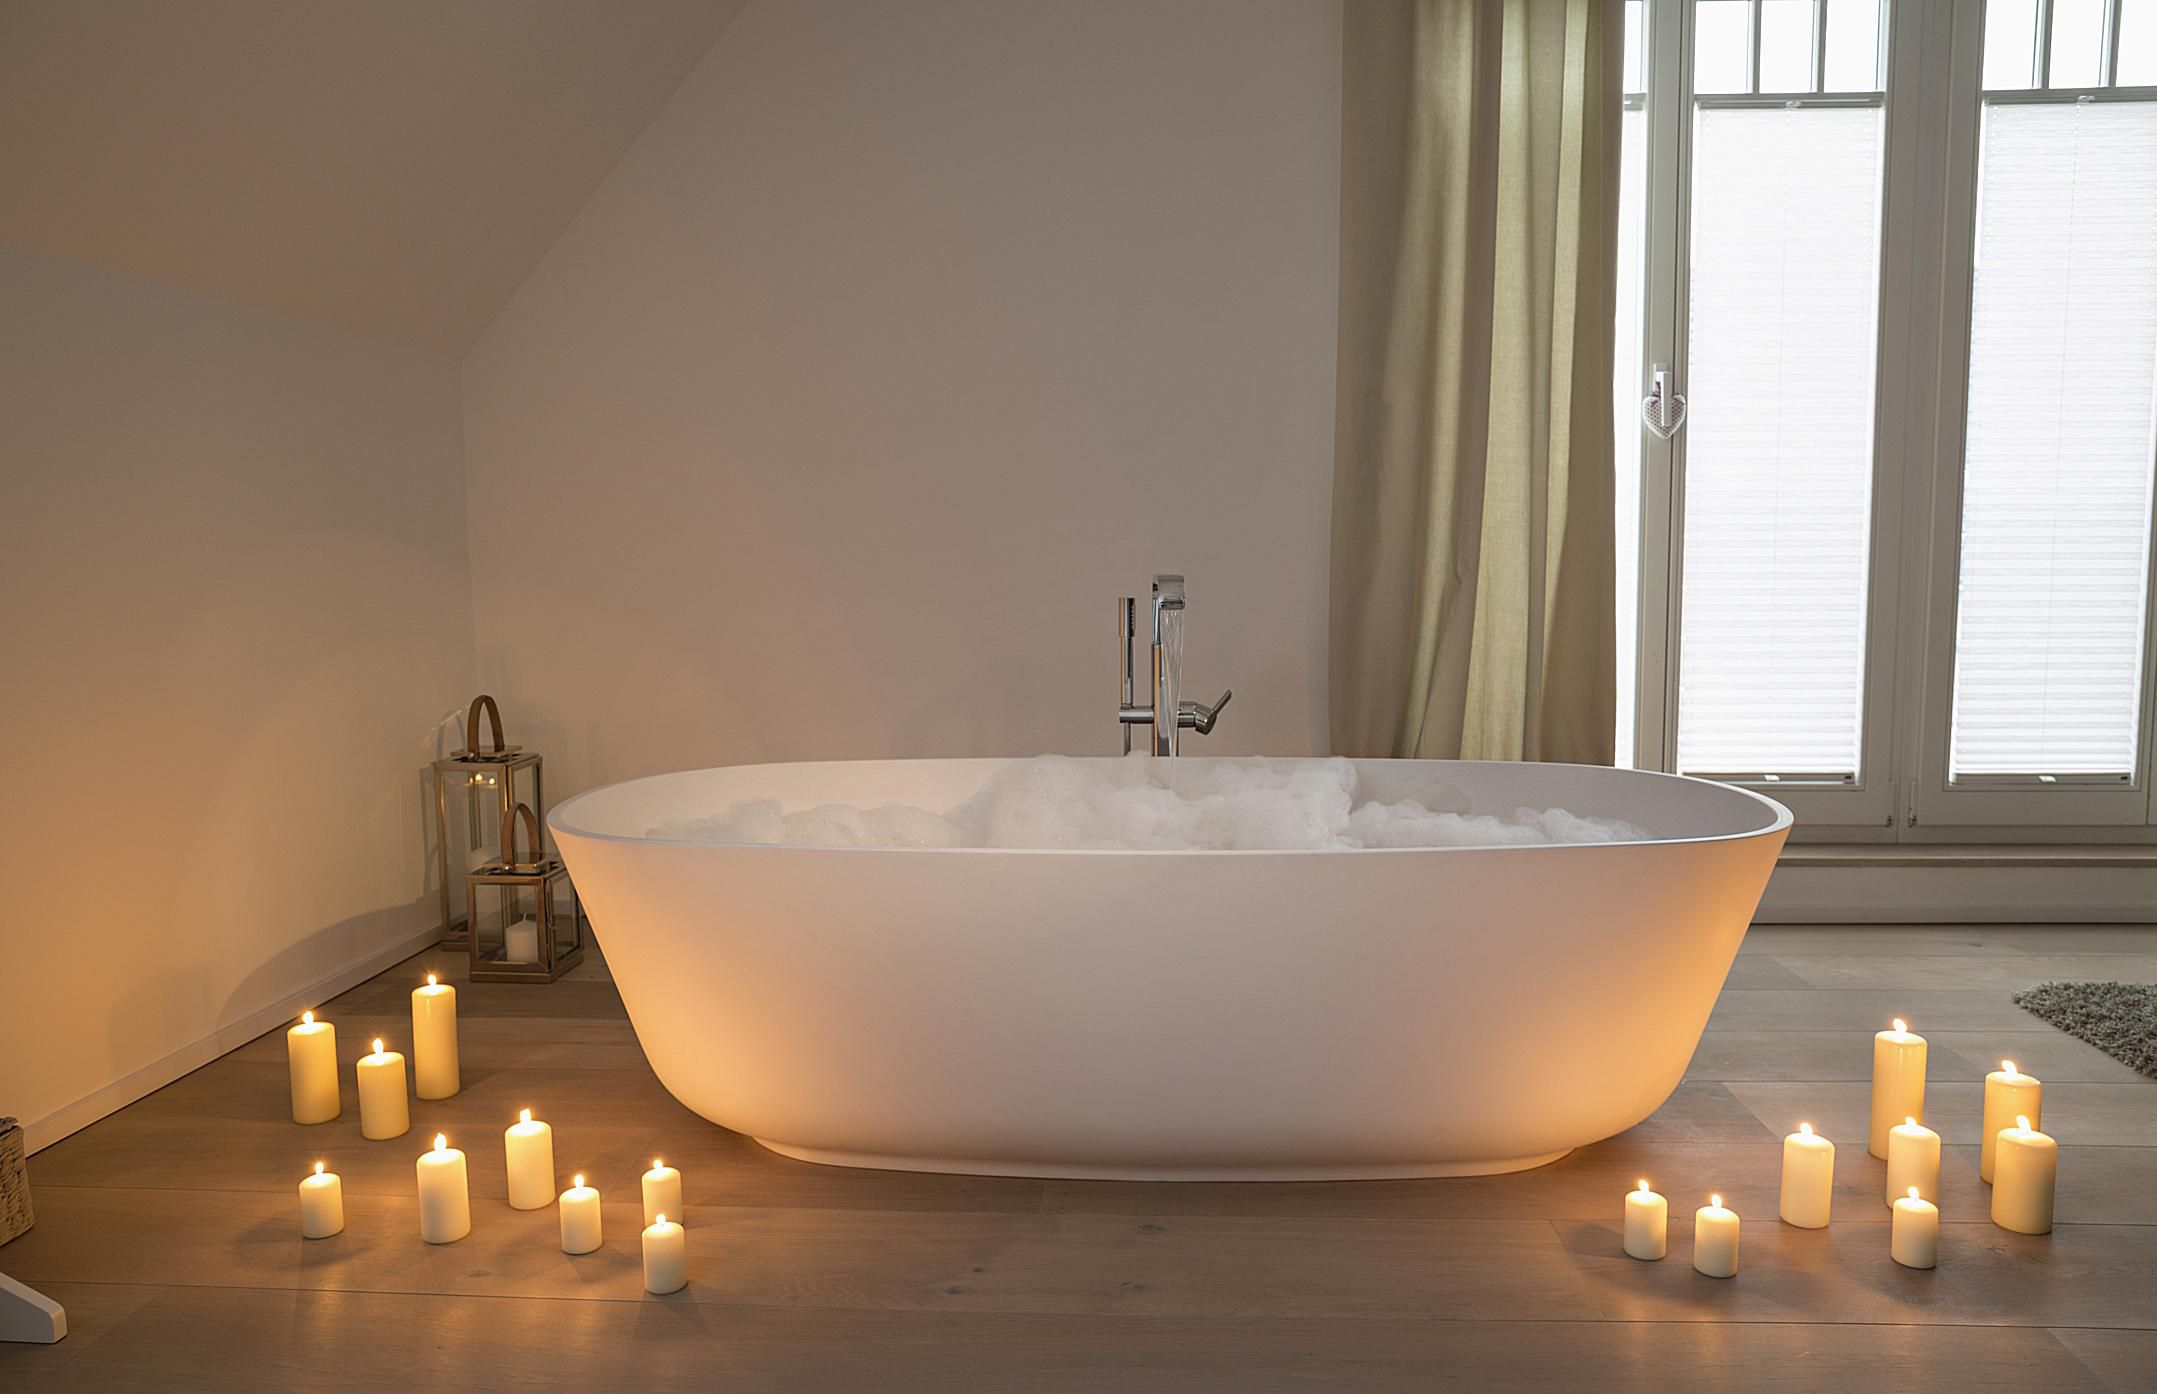 4 Ways To Make Bath Time Even More Relaxing